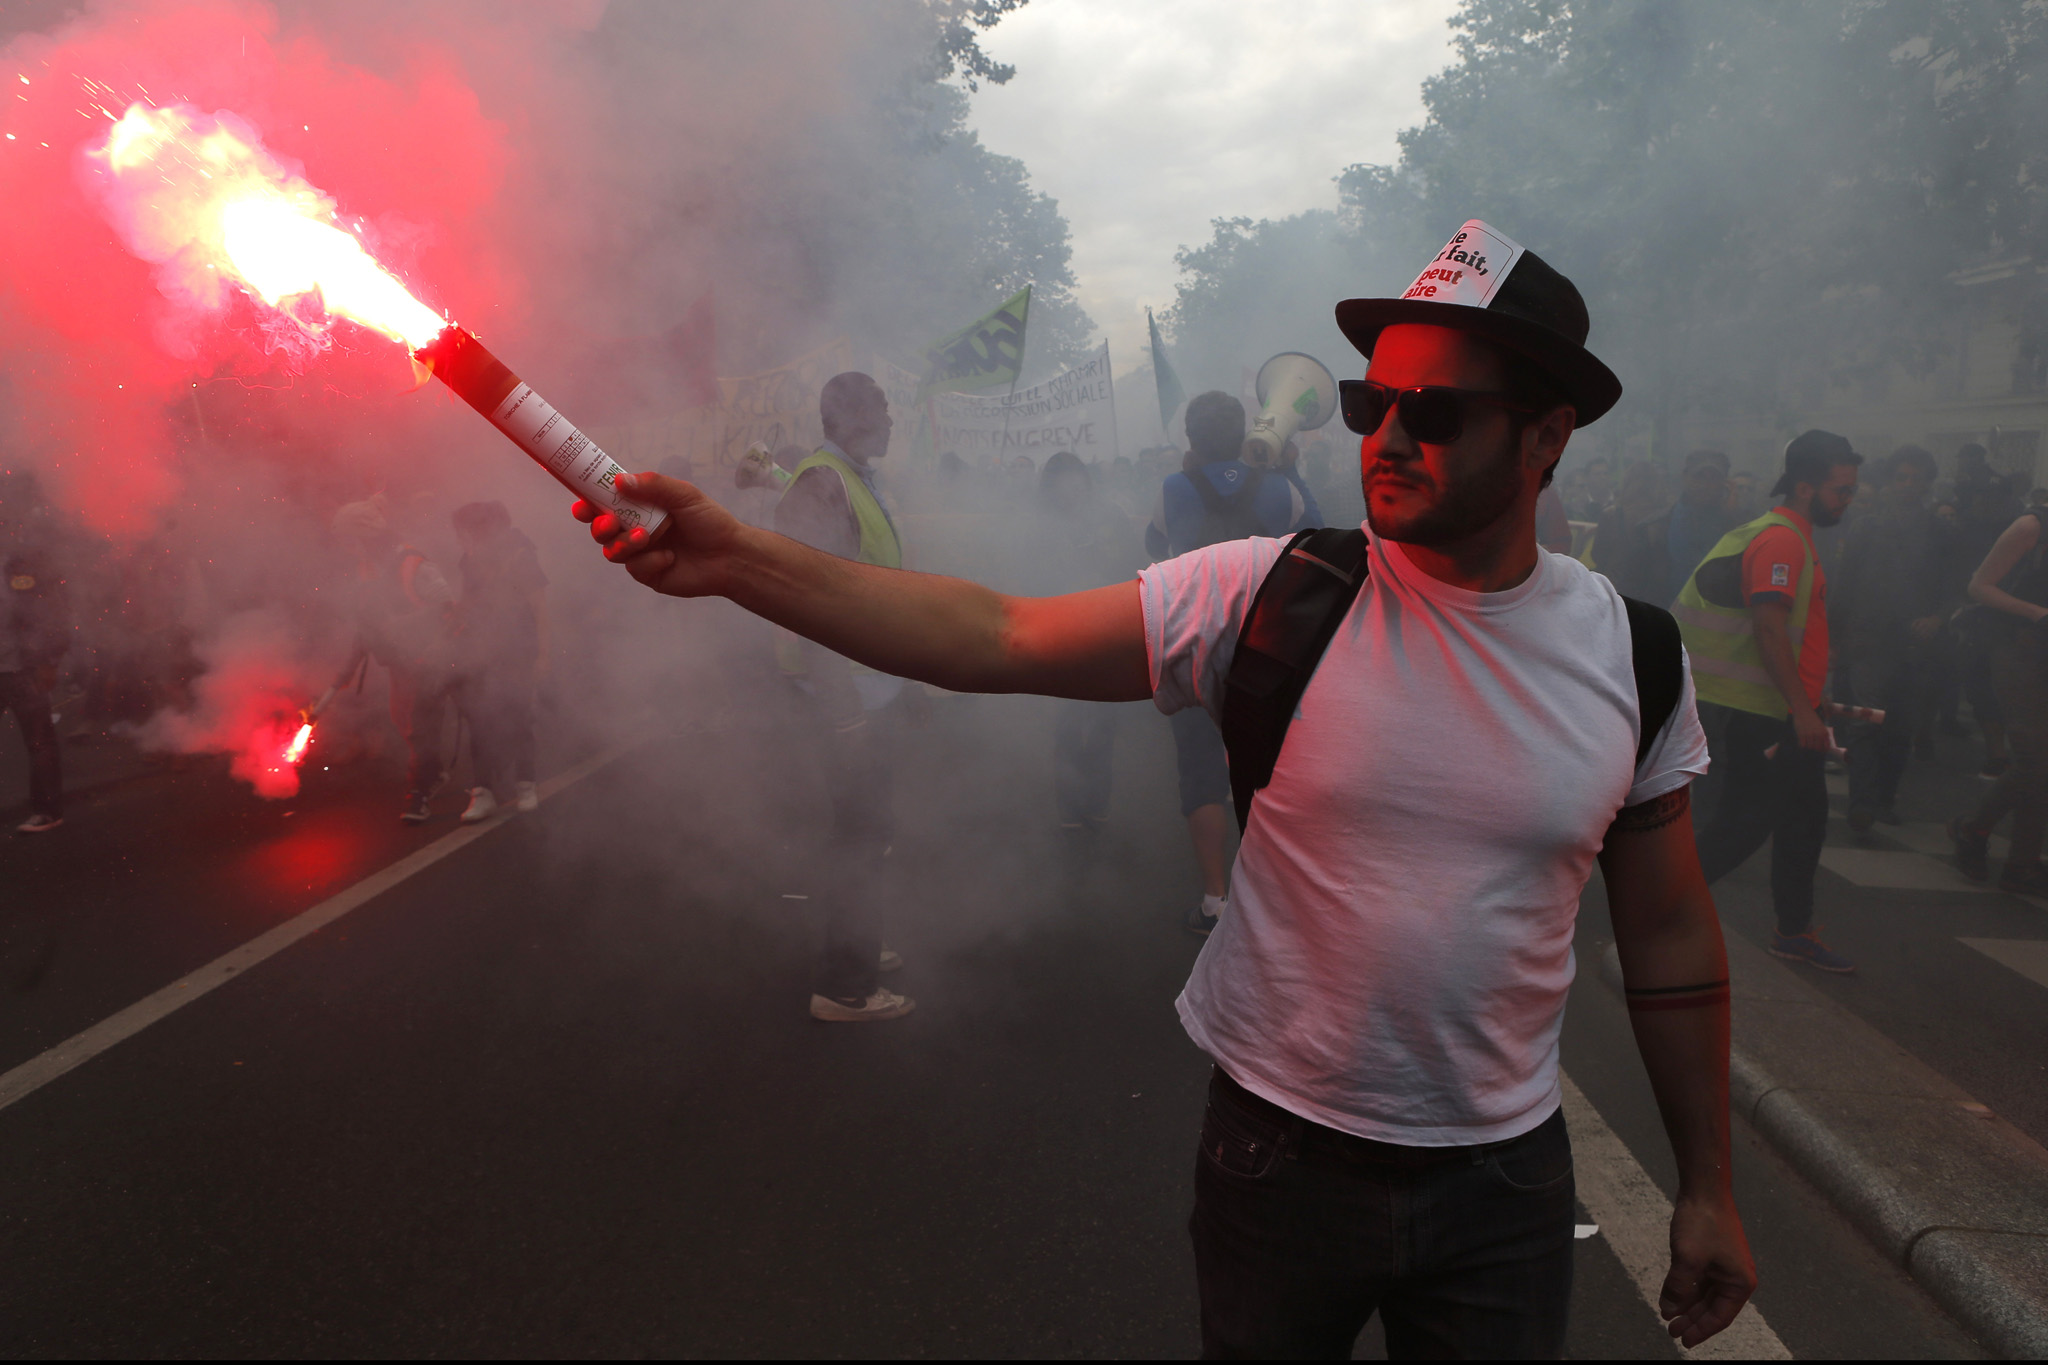 A member of the leftist CGT labor union holds a flare during a march in Paris Tuesday, June 14, 2016. Street protests are planned across France, rail workers and taxi drivers are going on strike and the Eiffel Tower is due to be closed as part of a protest against a reform aimed at loosening the country's labor rules. (AP Photo/Francois Mori)